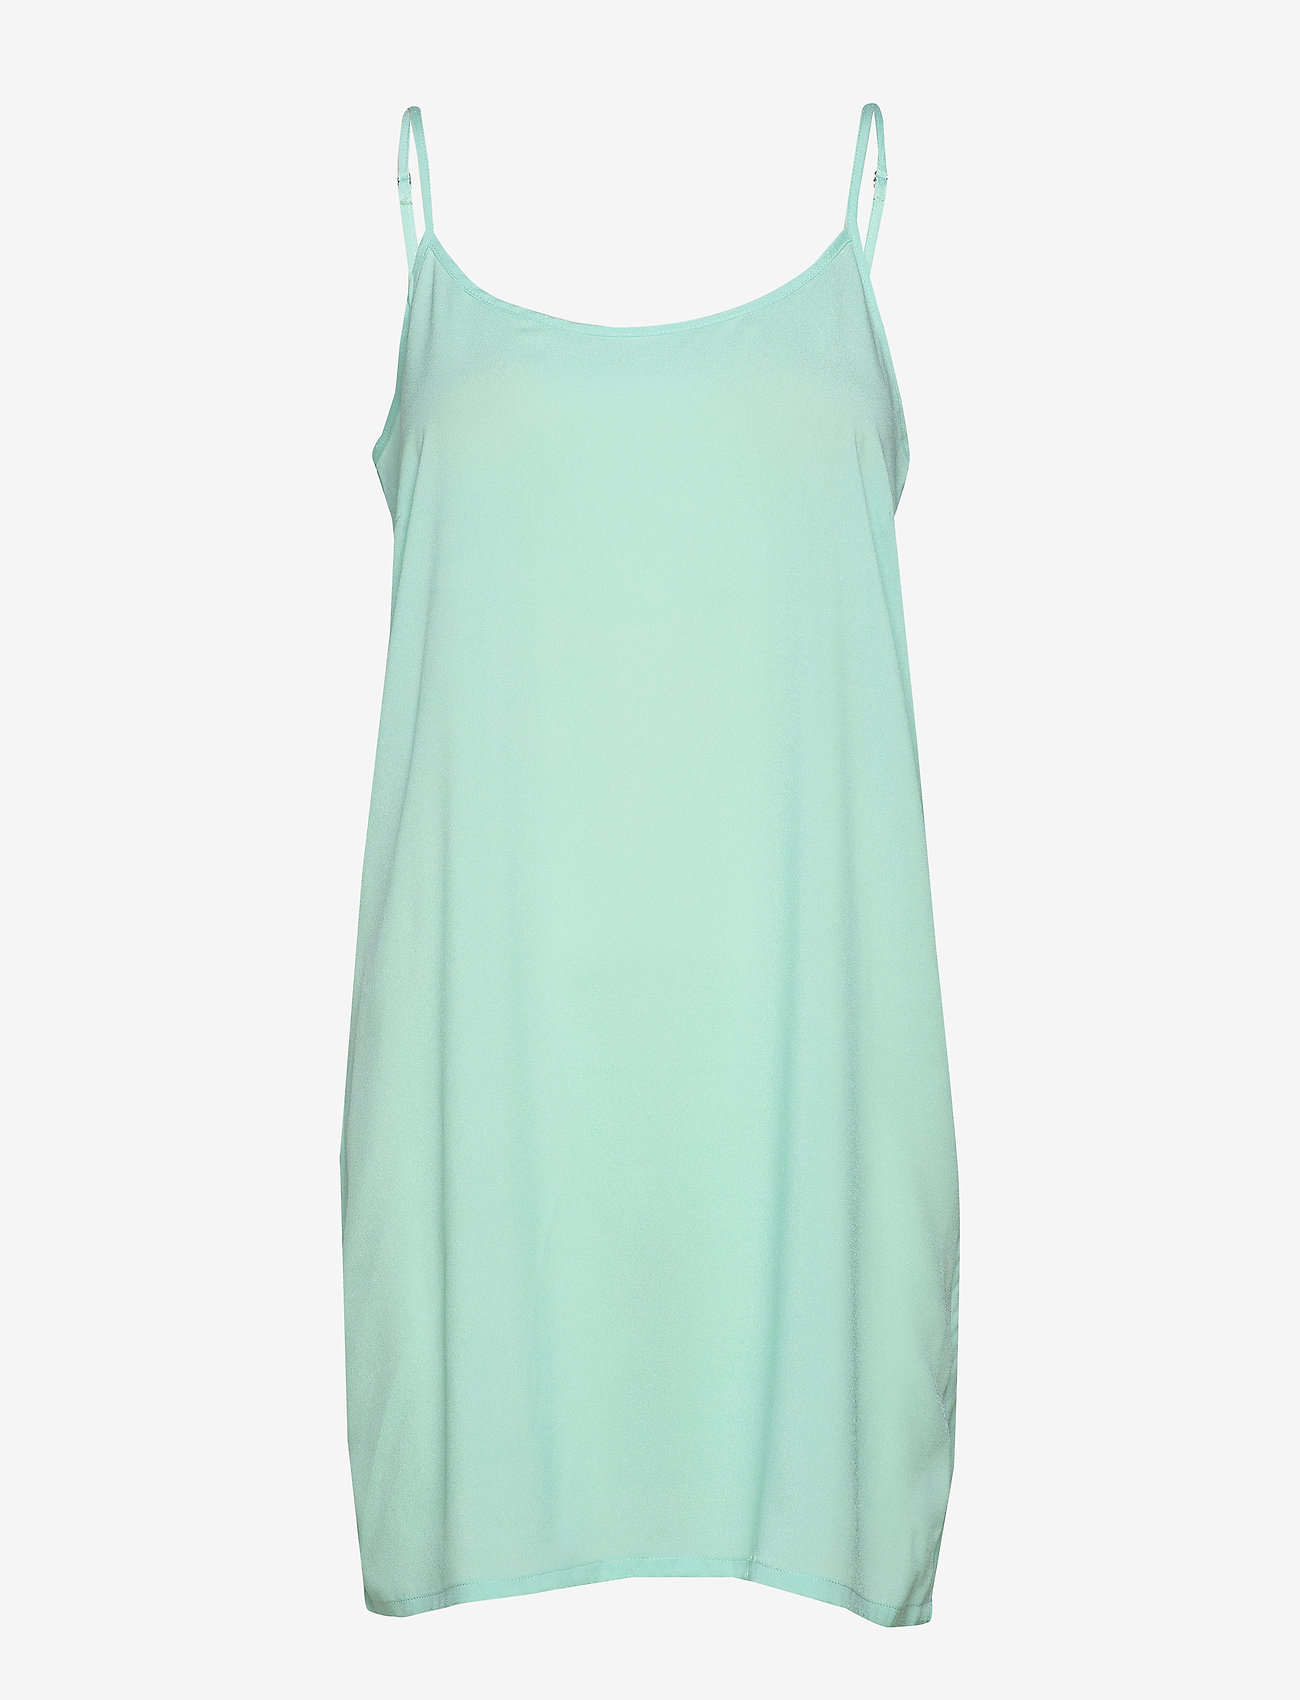 Cathrine Dress (Jade Green) (560 kr) - Modström 0nPXgsMi